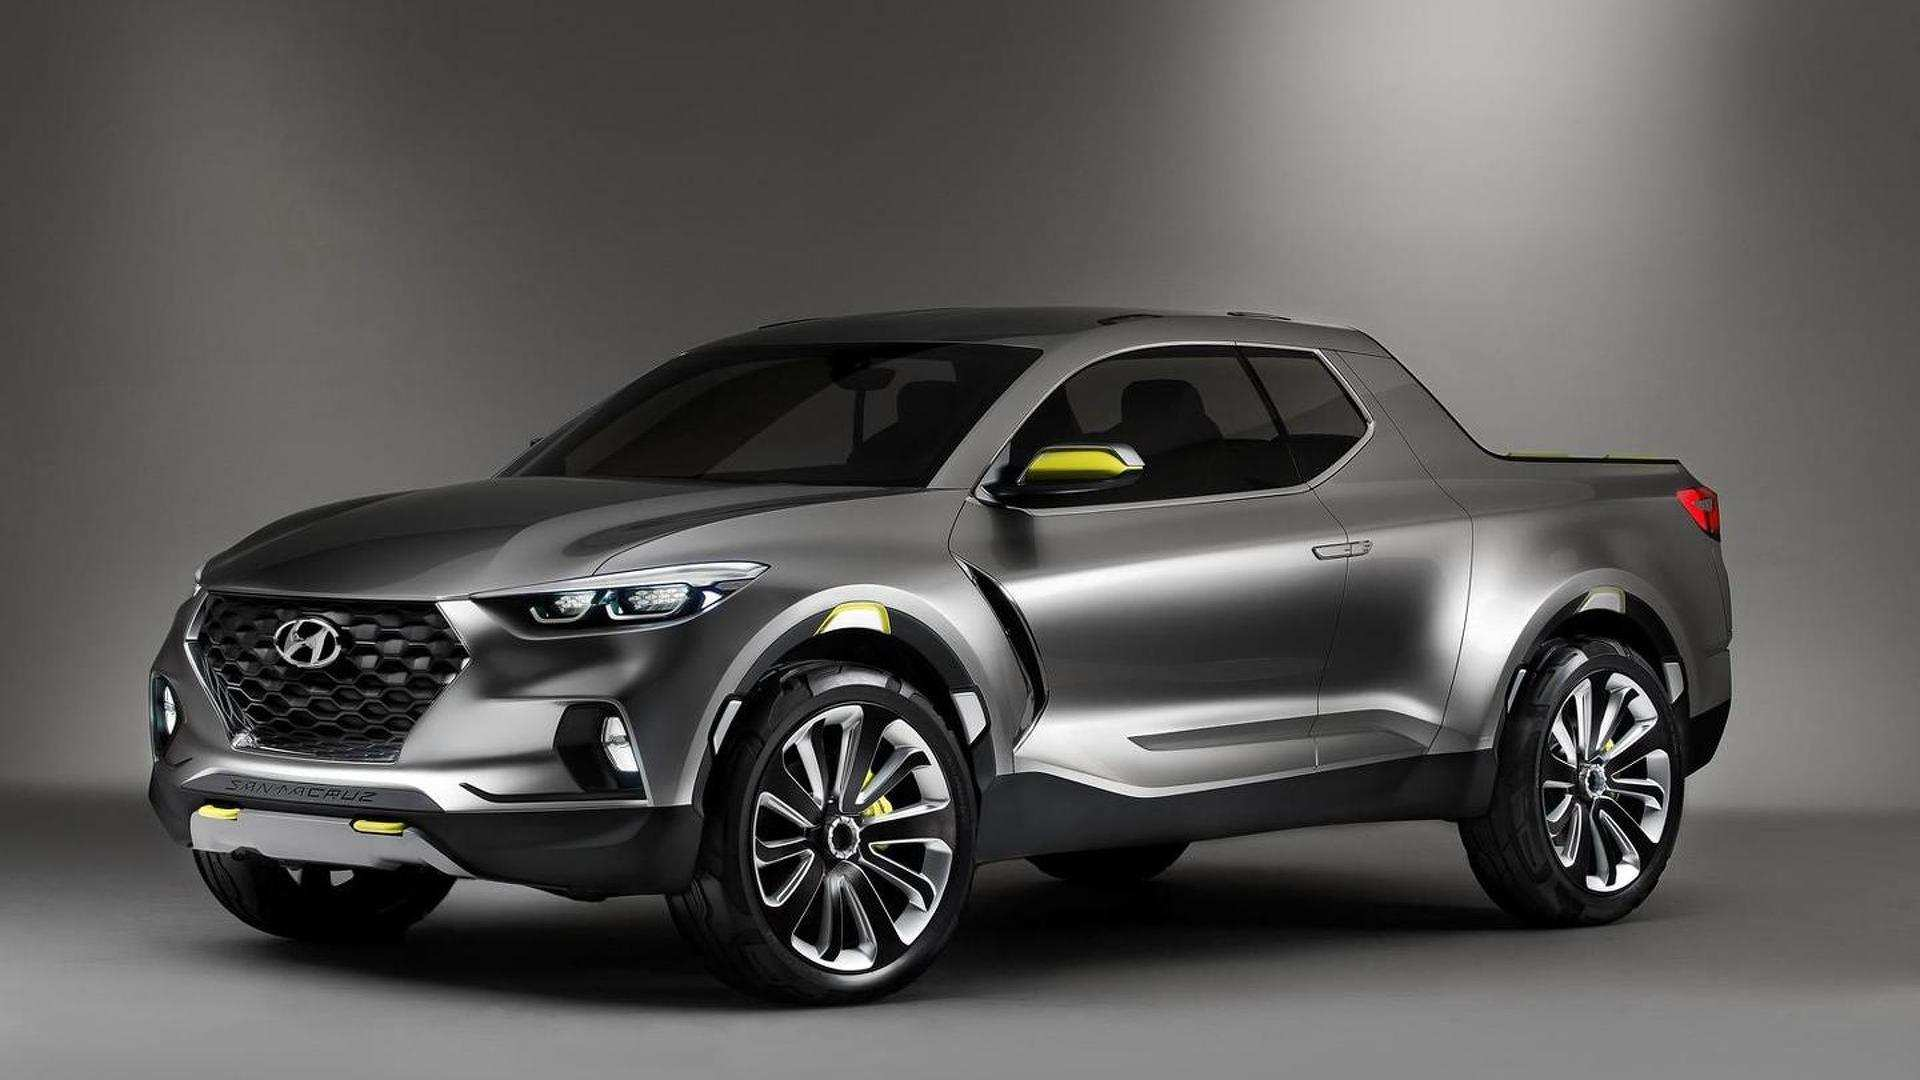 18 All New Hyundai Pickup 2020 Wallpaper with Hyundai Pickup 2020